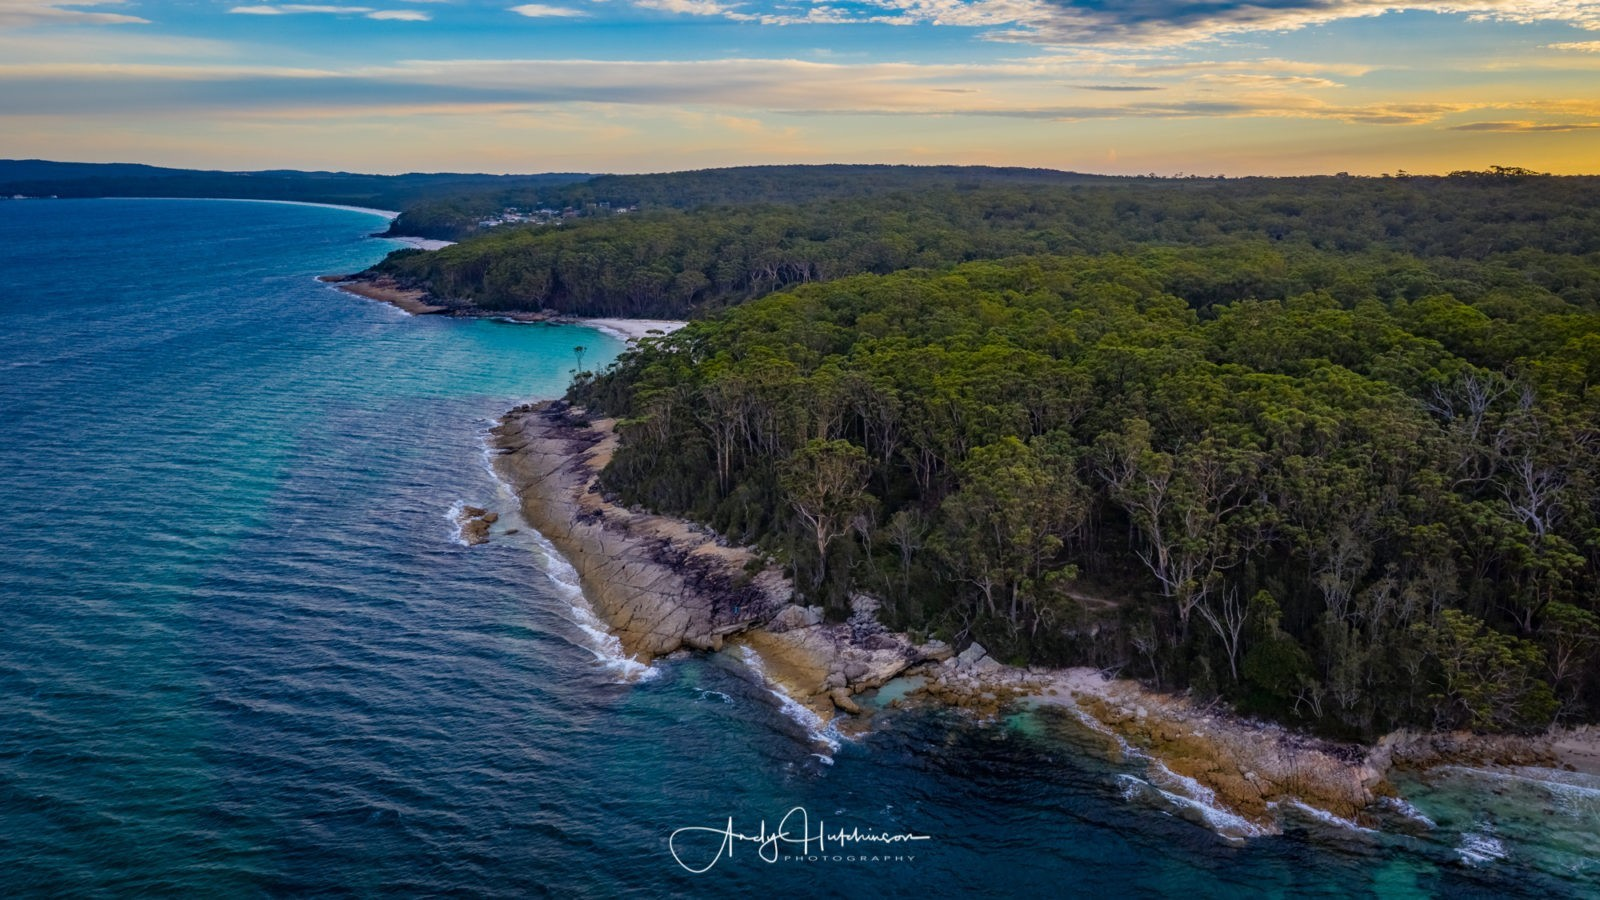 So I took some shots looking south towards Greenfields and Hyams beyond and then hurriedly brought the drone down to land. Since my big plan for the evening was scuppered by the high winds, I had no option but to move beaches again. Blenheim, Greenfields, Chinamans and Hyams are awesome for sunrise, but only good for sunset if you can get some height and my tripod doesn't go that high. So, with 20 minutes to go until sunset, I decided to get my arse over to Plantation Point where I could, at least, photograph the sunset with the DSLR.